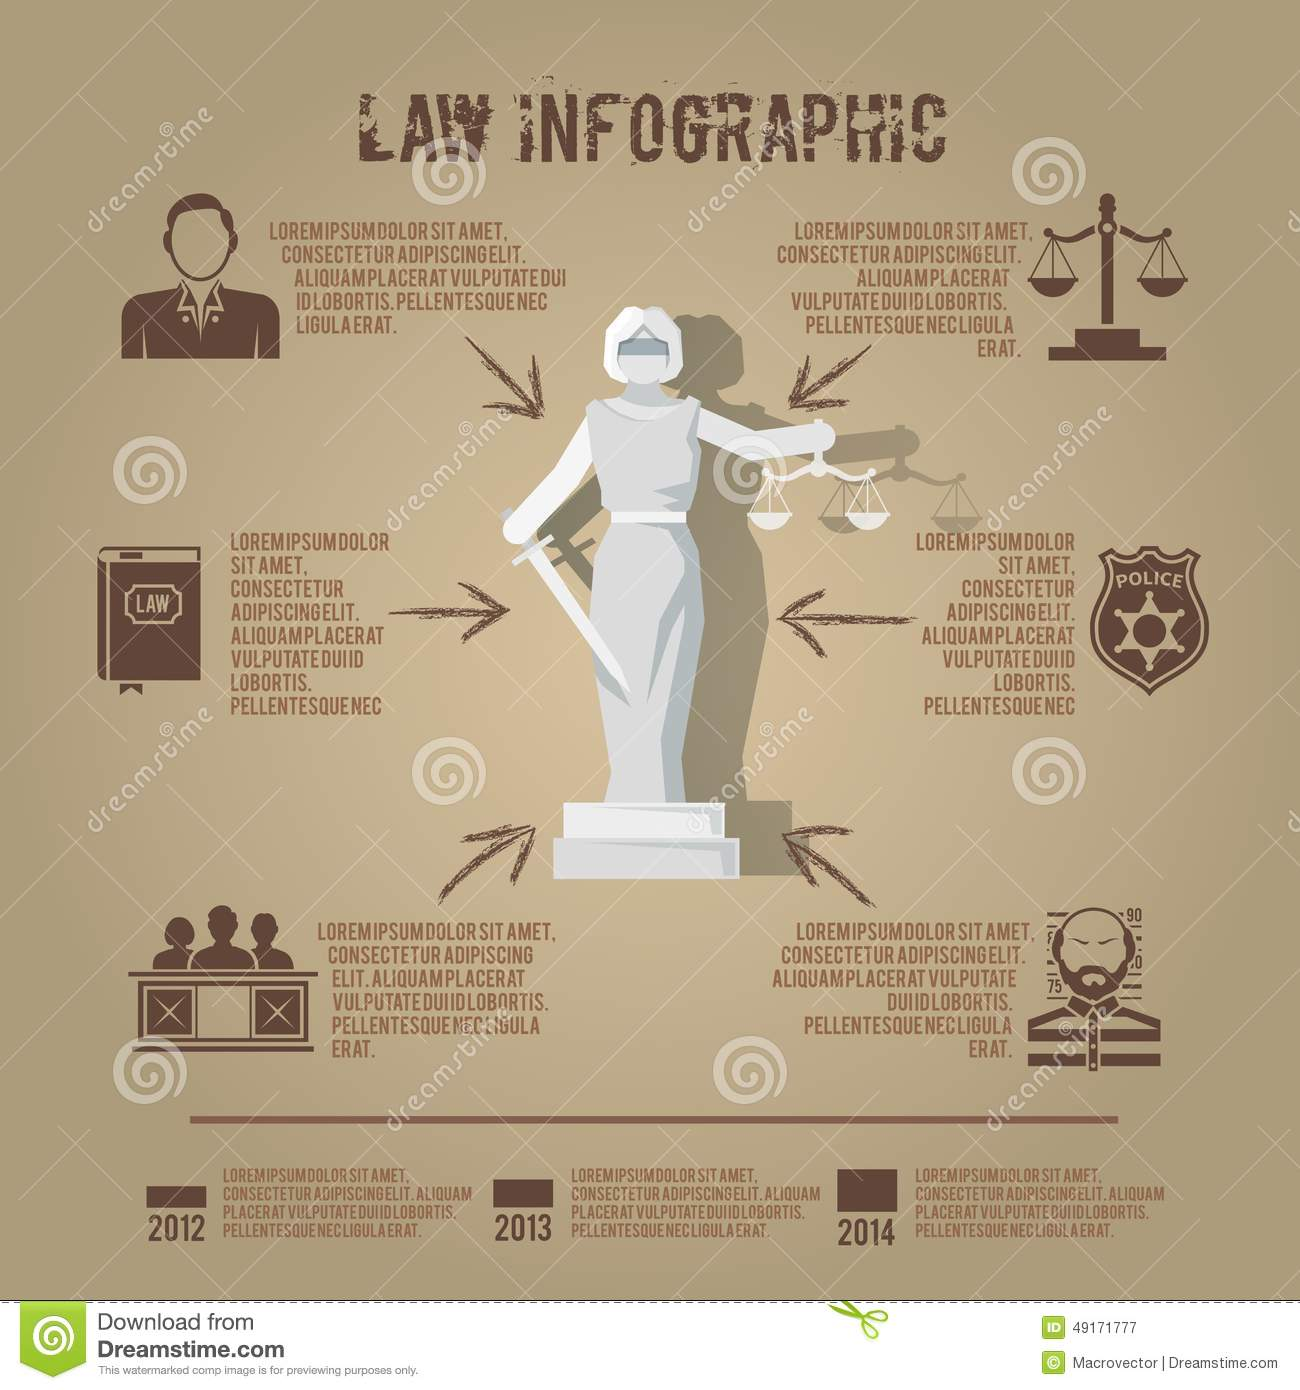 13 court judge in psd poster images